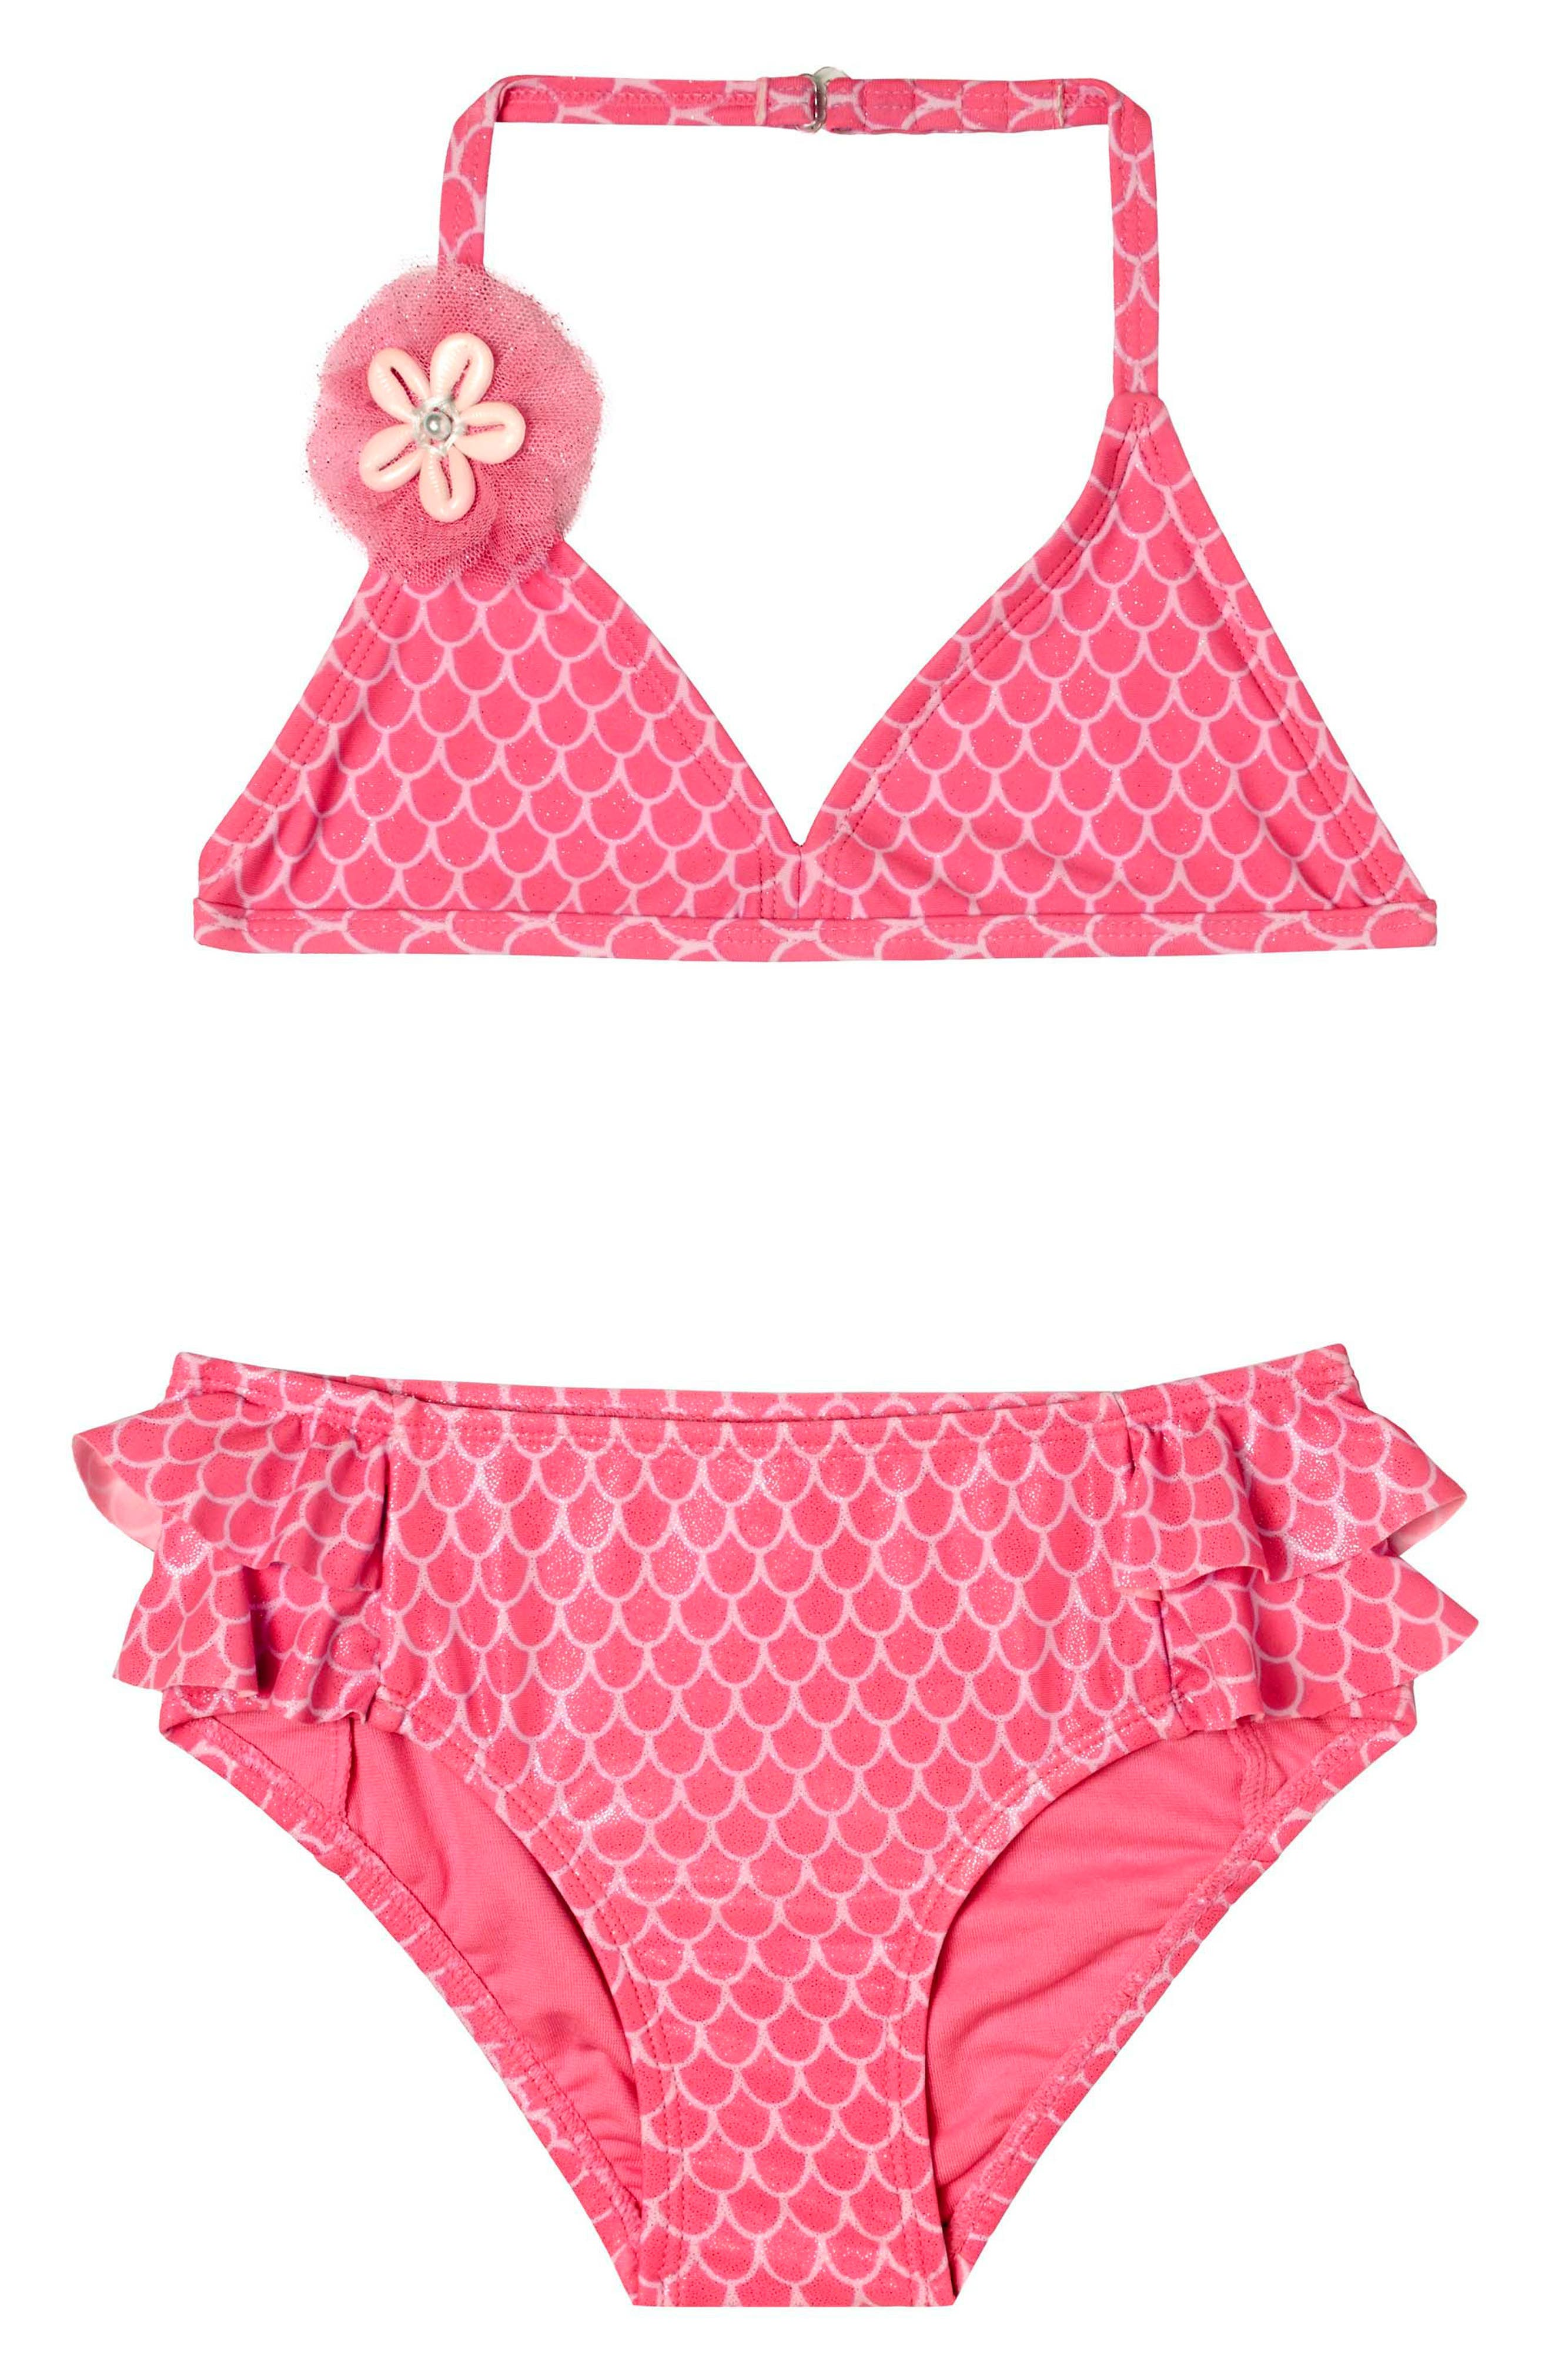 Mermaid Princess Two-Piece Swimsuit,                         Main,                         color, Pink